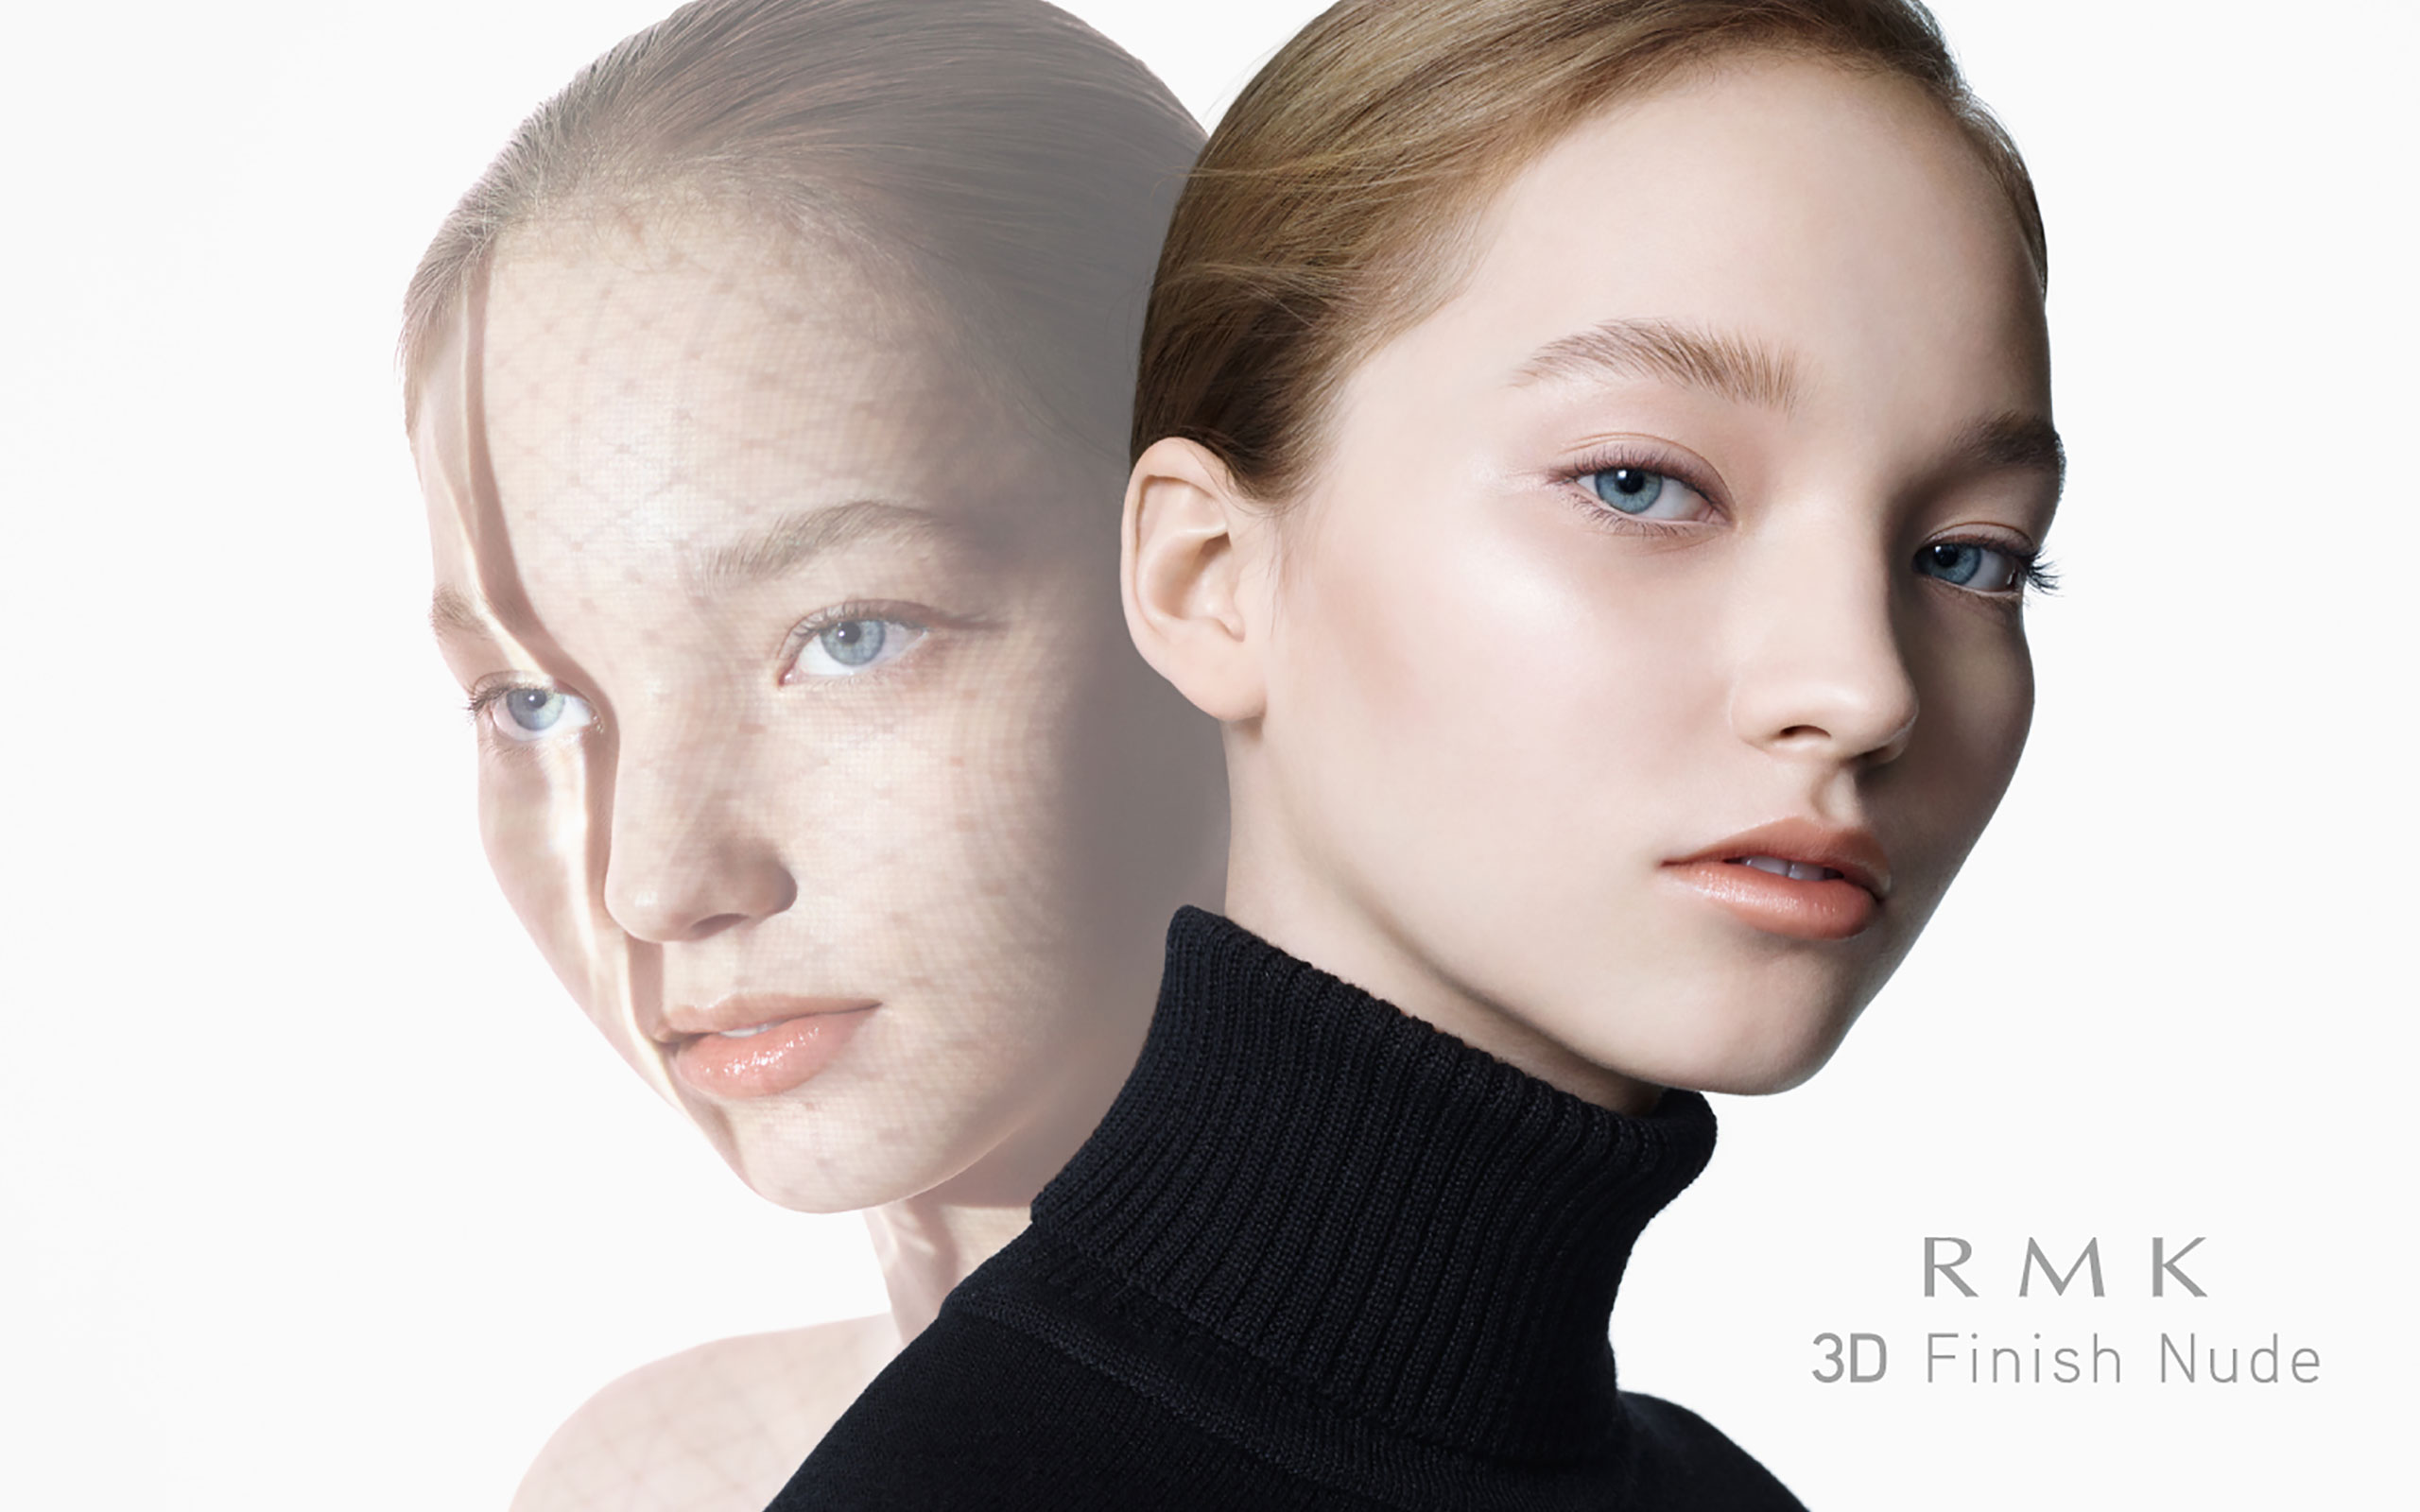 RMK Launches New Foundation '3D Finish Nude'